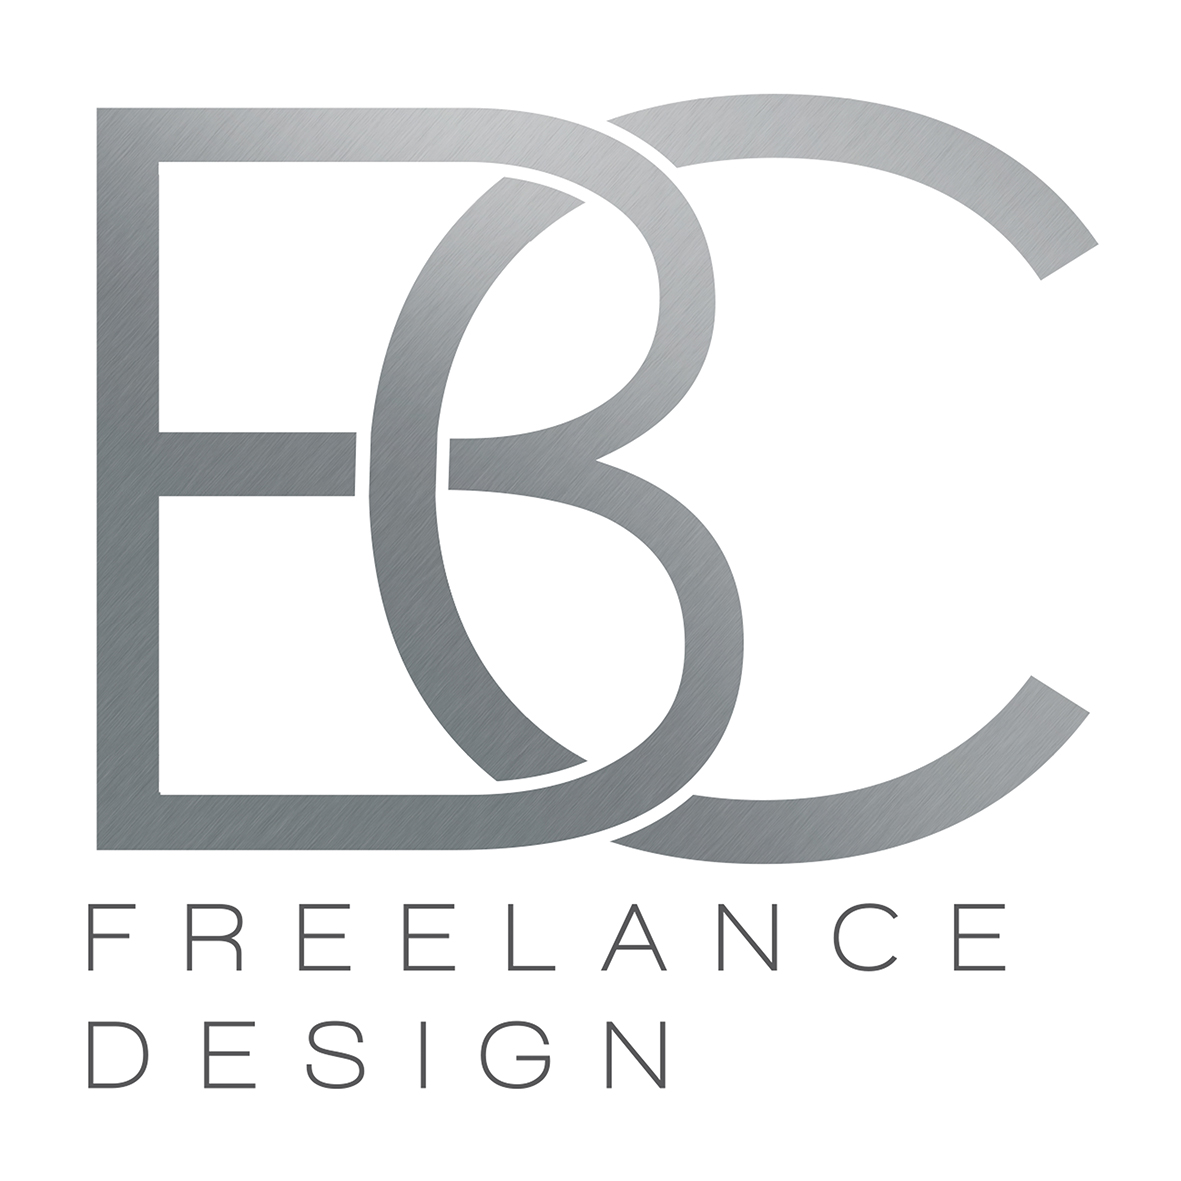 BC freelance design - Accommodation Georgetown